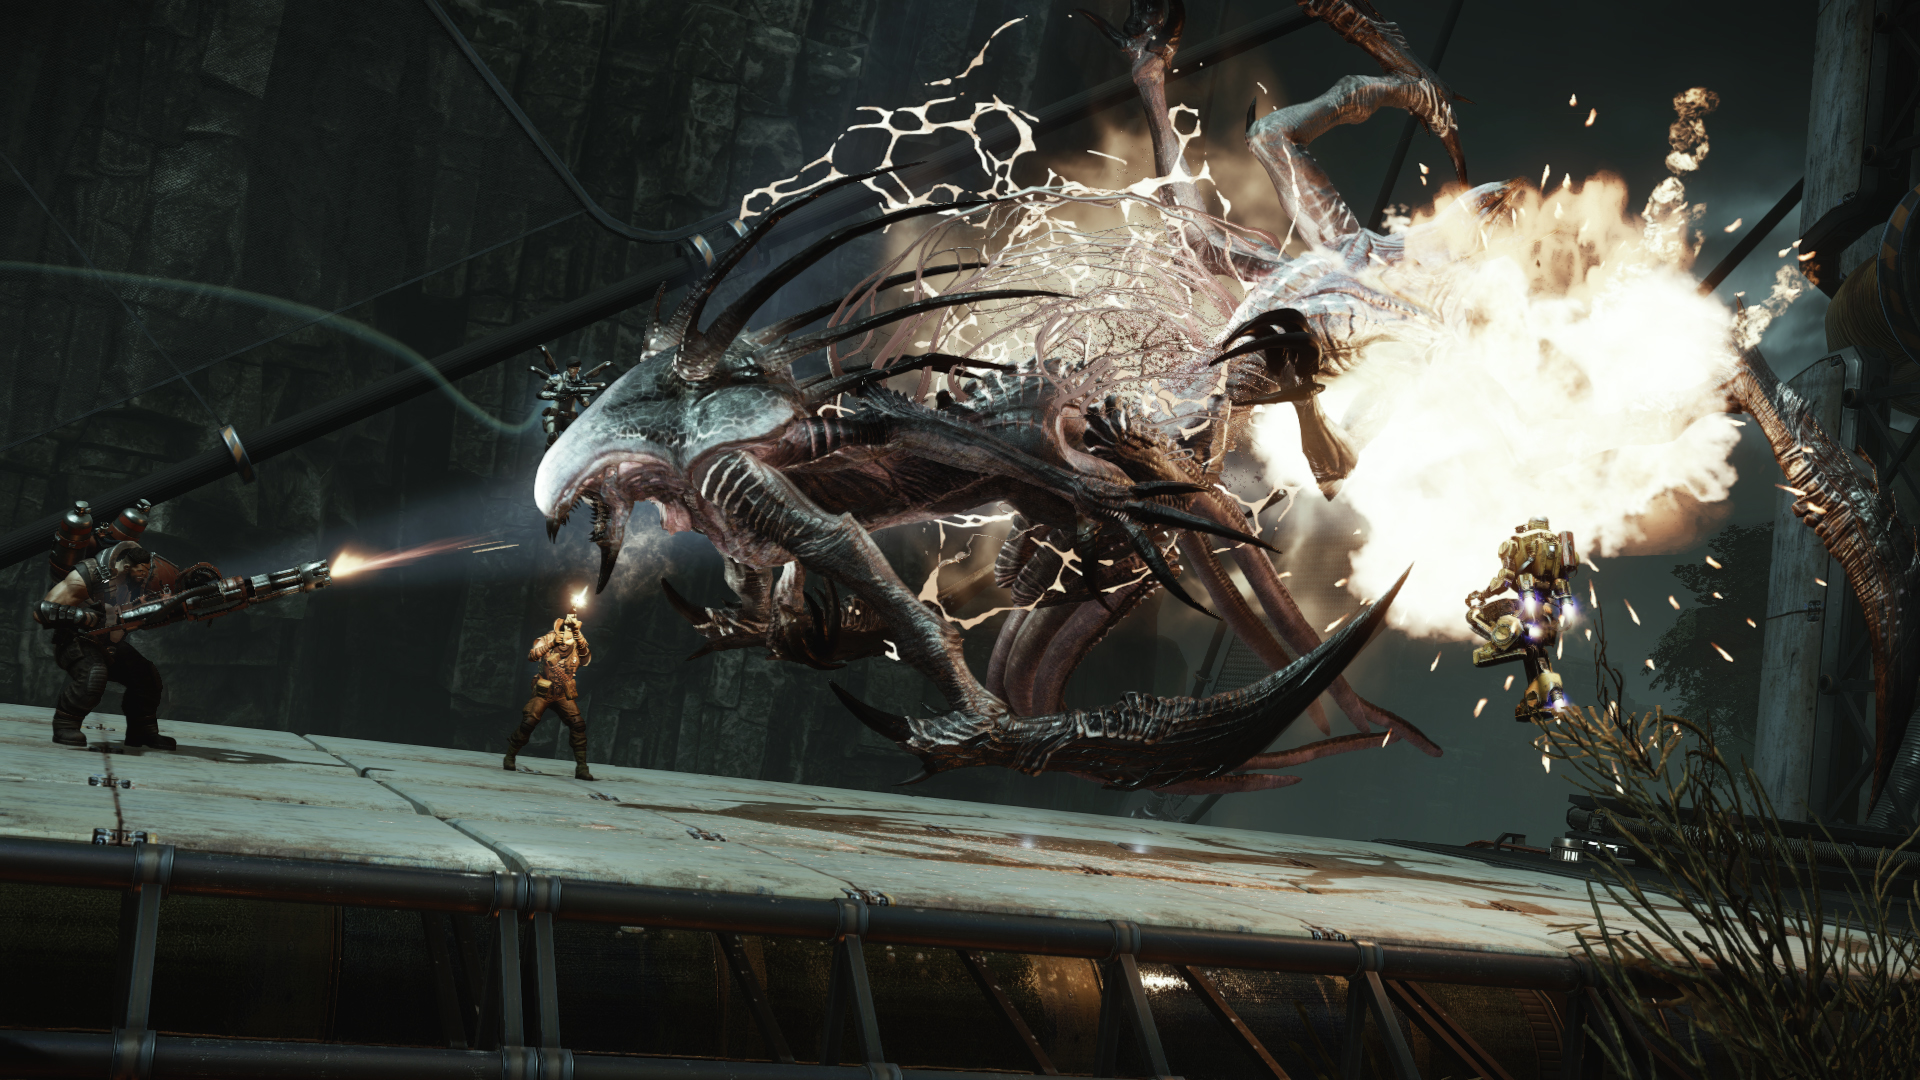 Evolve Preview Wraith Previews The Escapist Power Relay Either Way I Cant Wait To Jump Back Into Role Of When Launches Feb 10 For Xbox One Ps4 And Pc